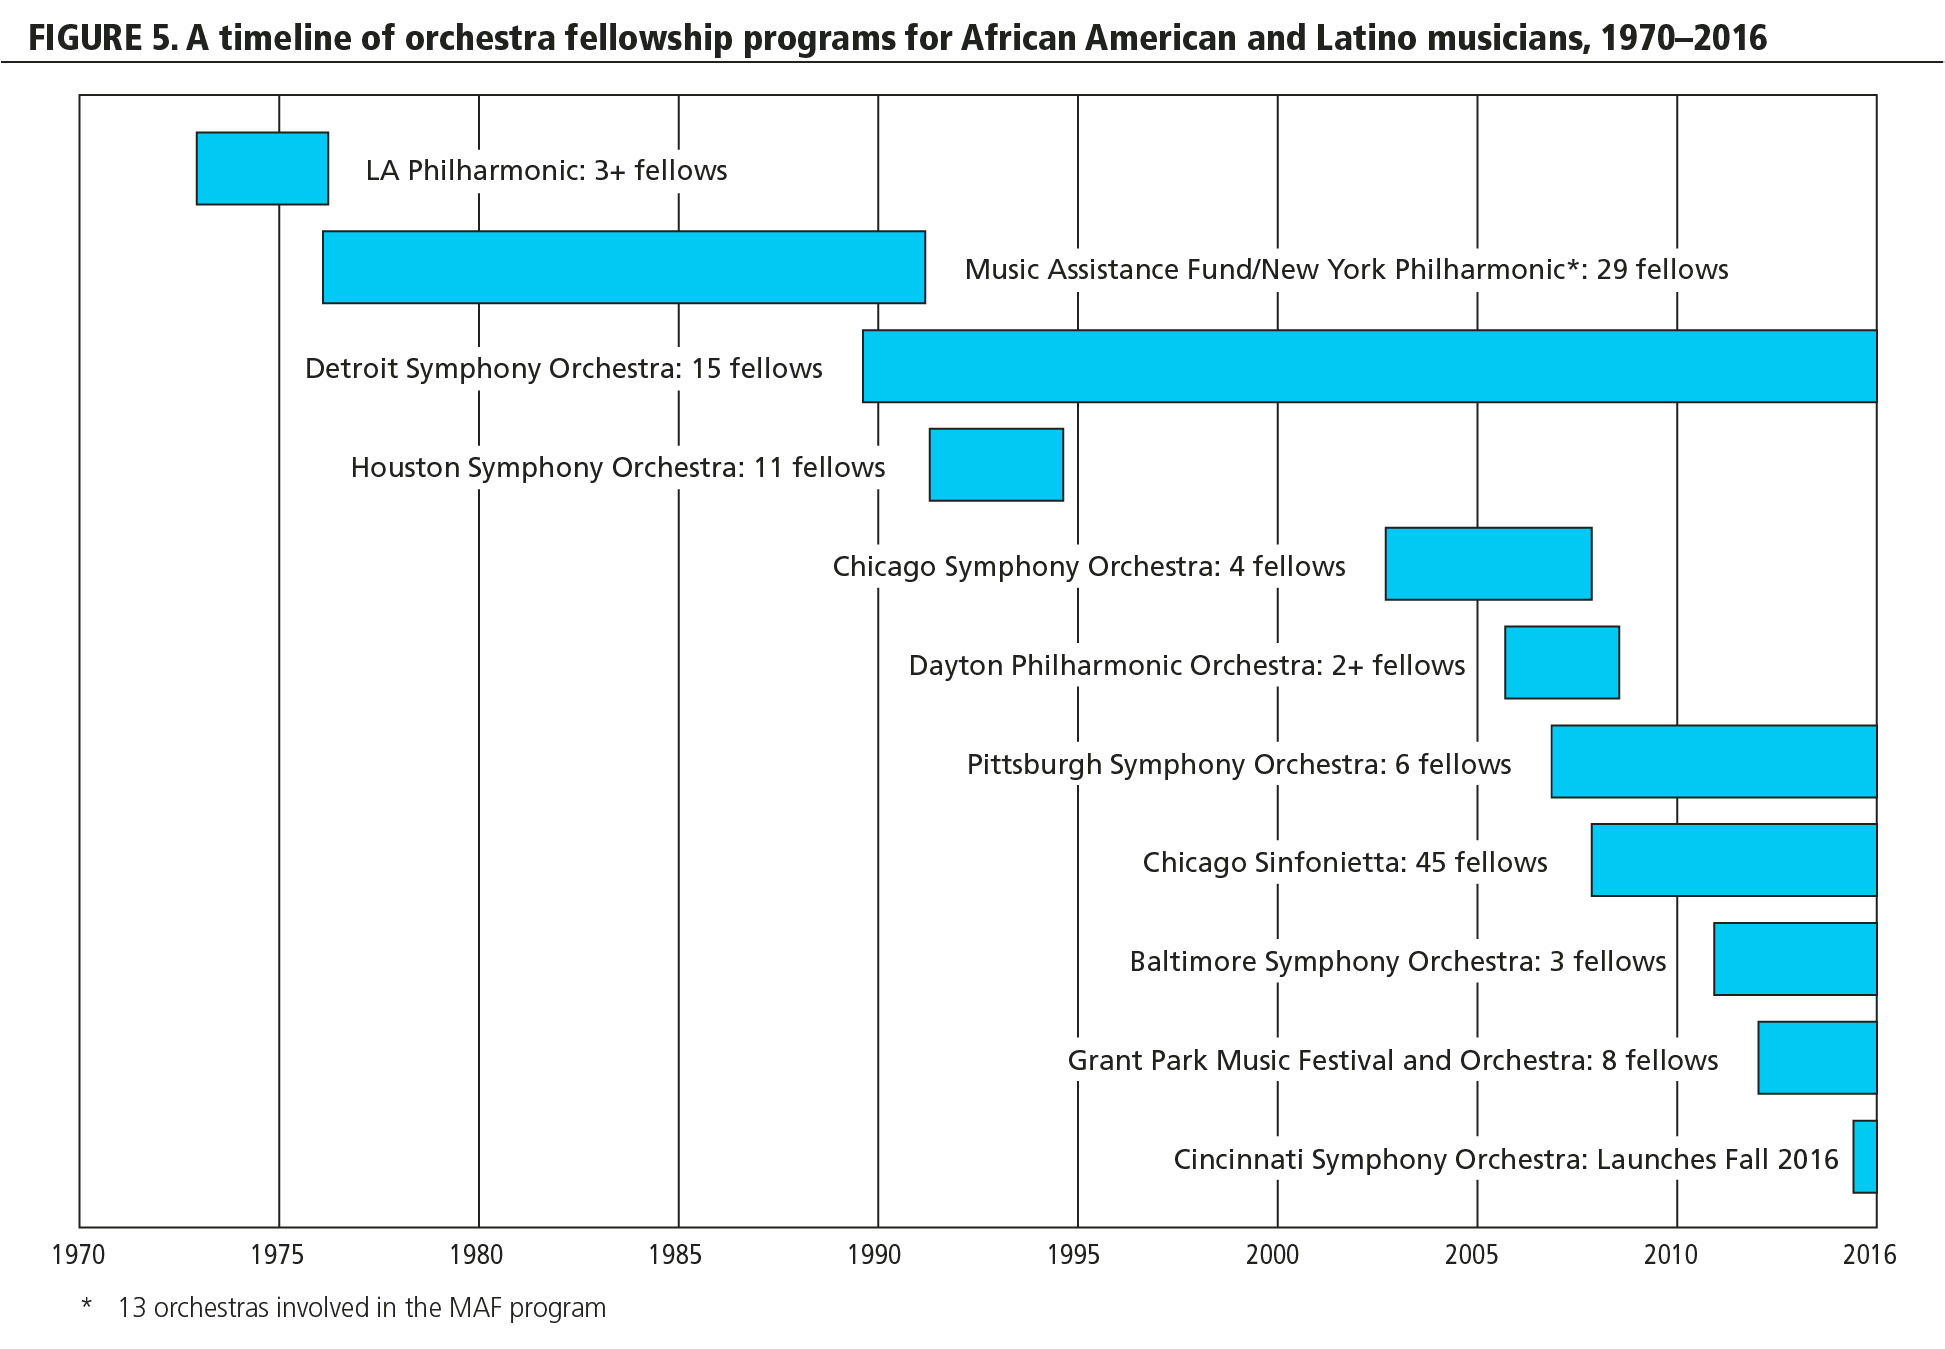 FIGURE 5. A timeline of orchestra fellowship programs for African American and Latino musicians, 1970-2016